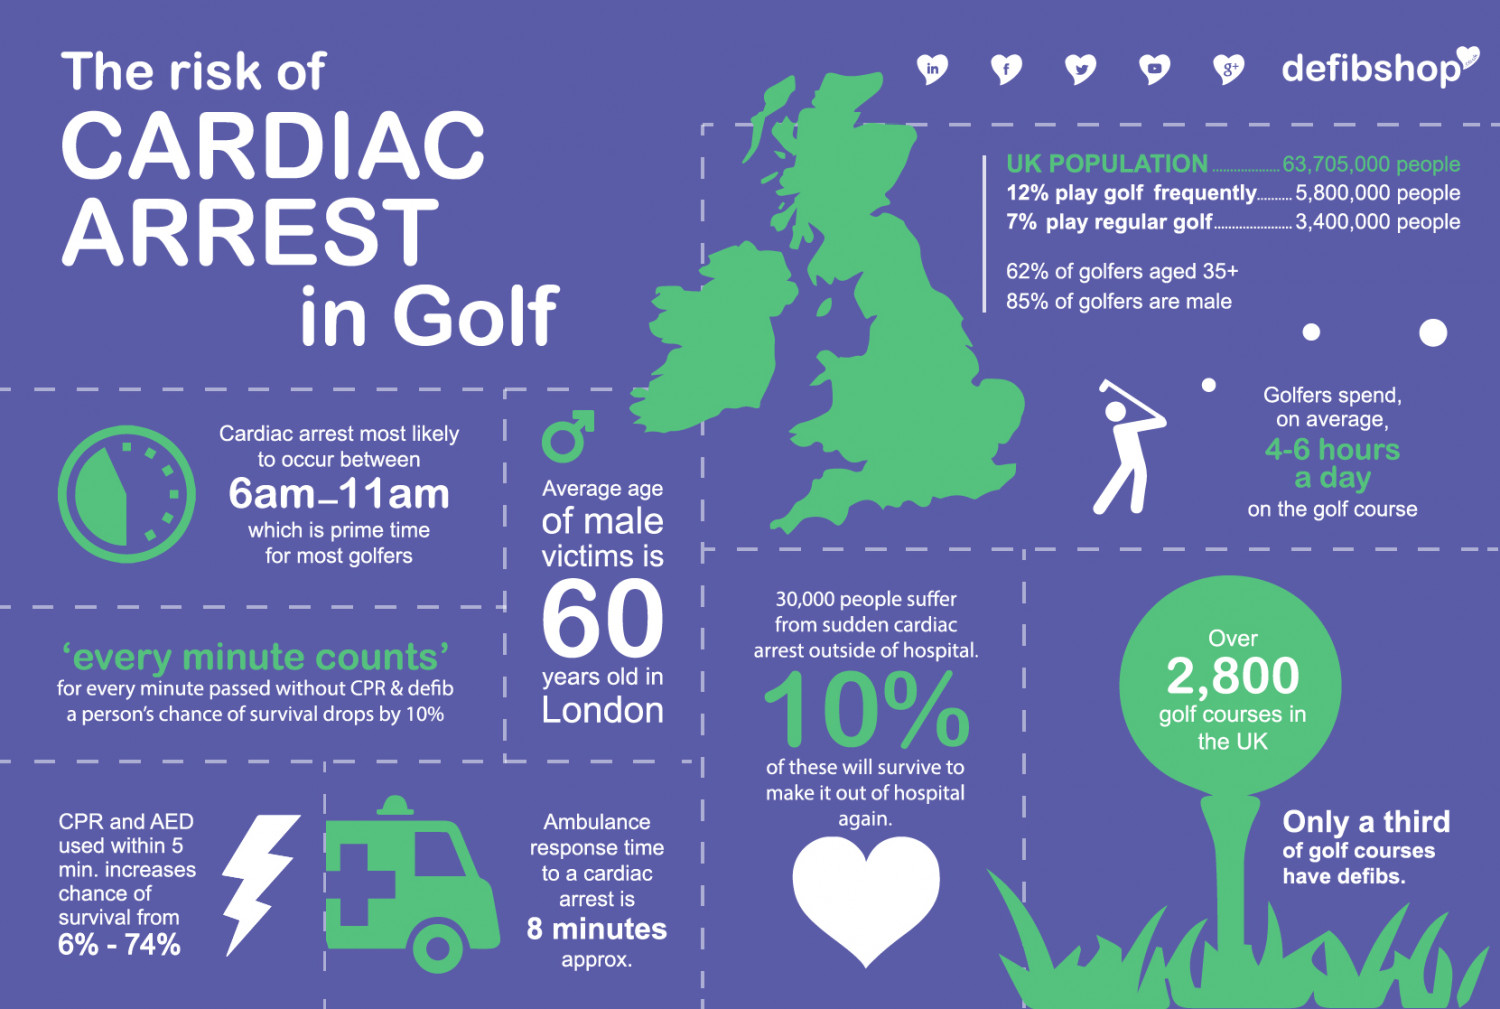 The Risk of Cardiac Arrest in Golf Infographic